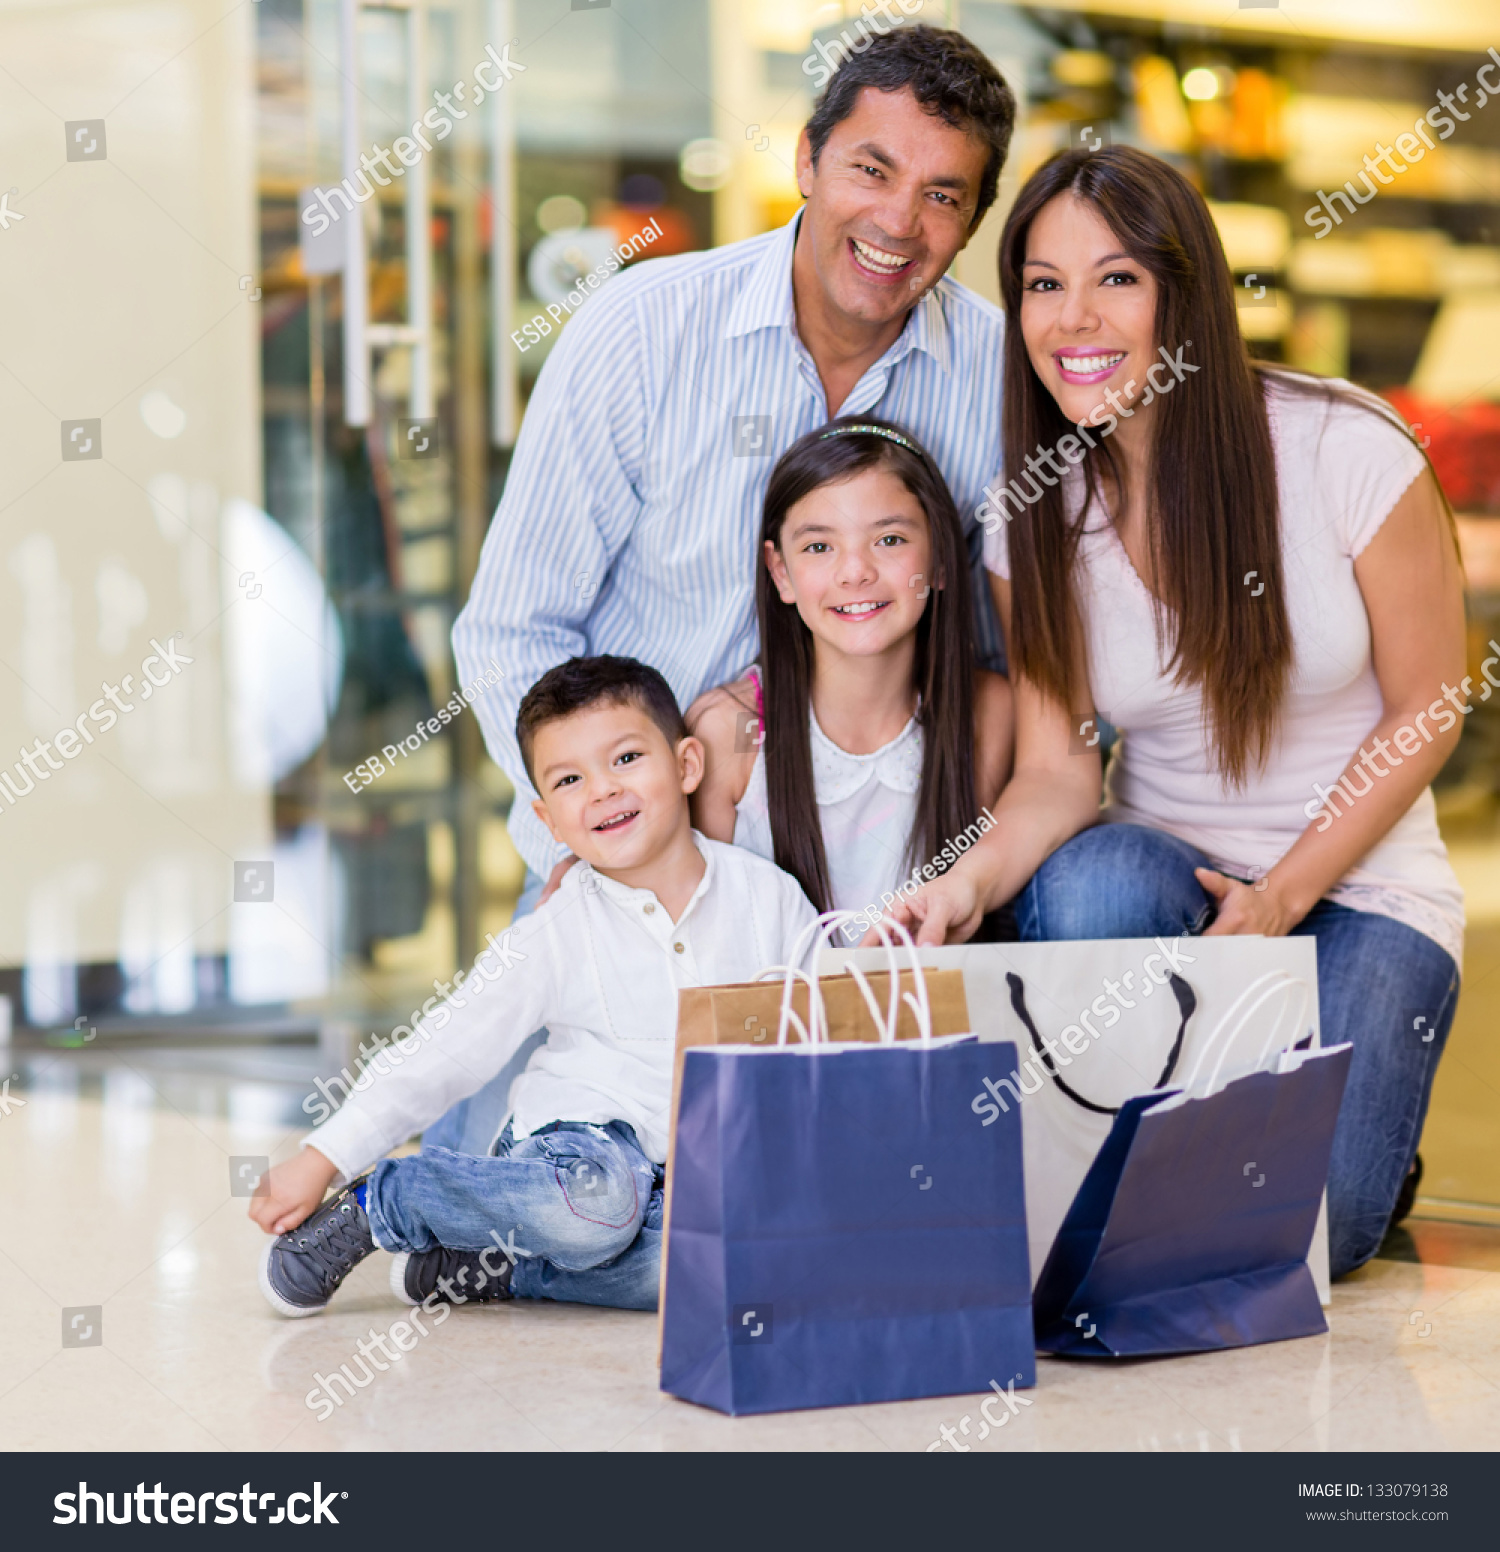 Beautiful Family Shopping Mall Looking Very Stock Photo (Safe to Use ...